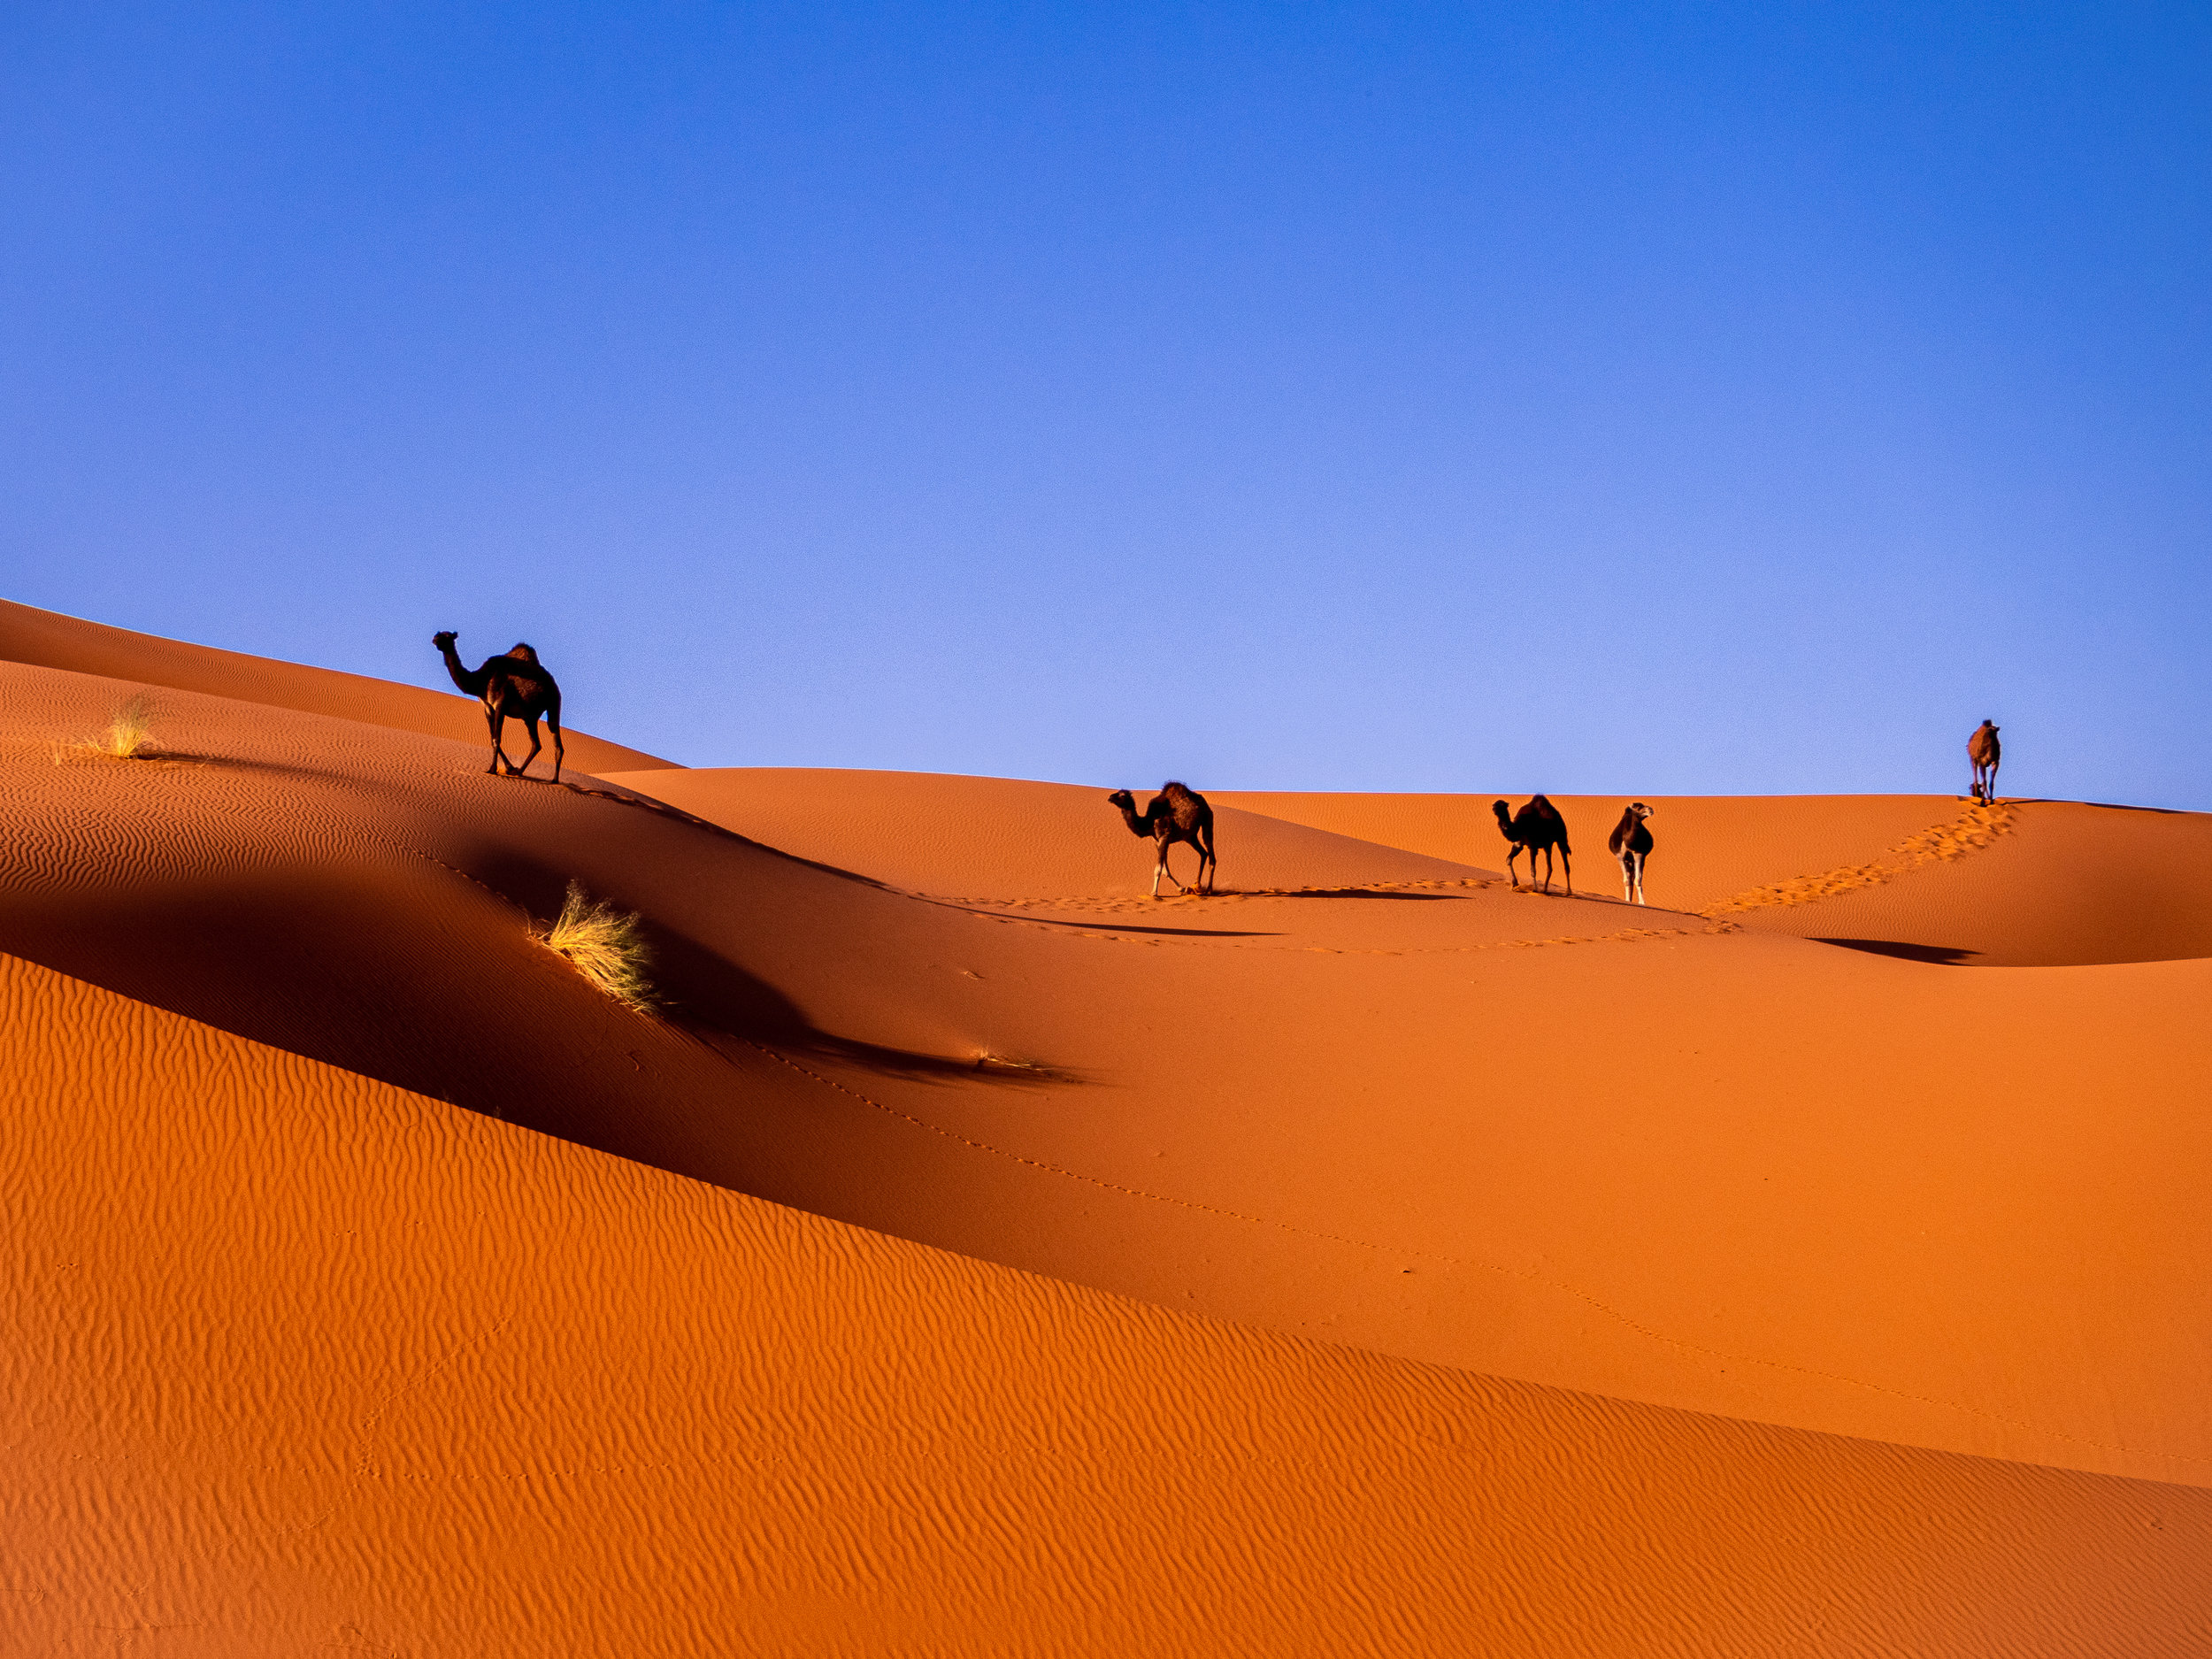 Come to discover the Moroccan desert, - you'll get to experience joyful and fearful dunes rides. You can also enjoy nights in camps seeing the beautiful setting of stars.